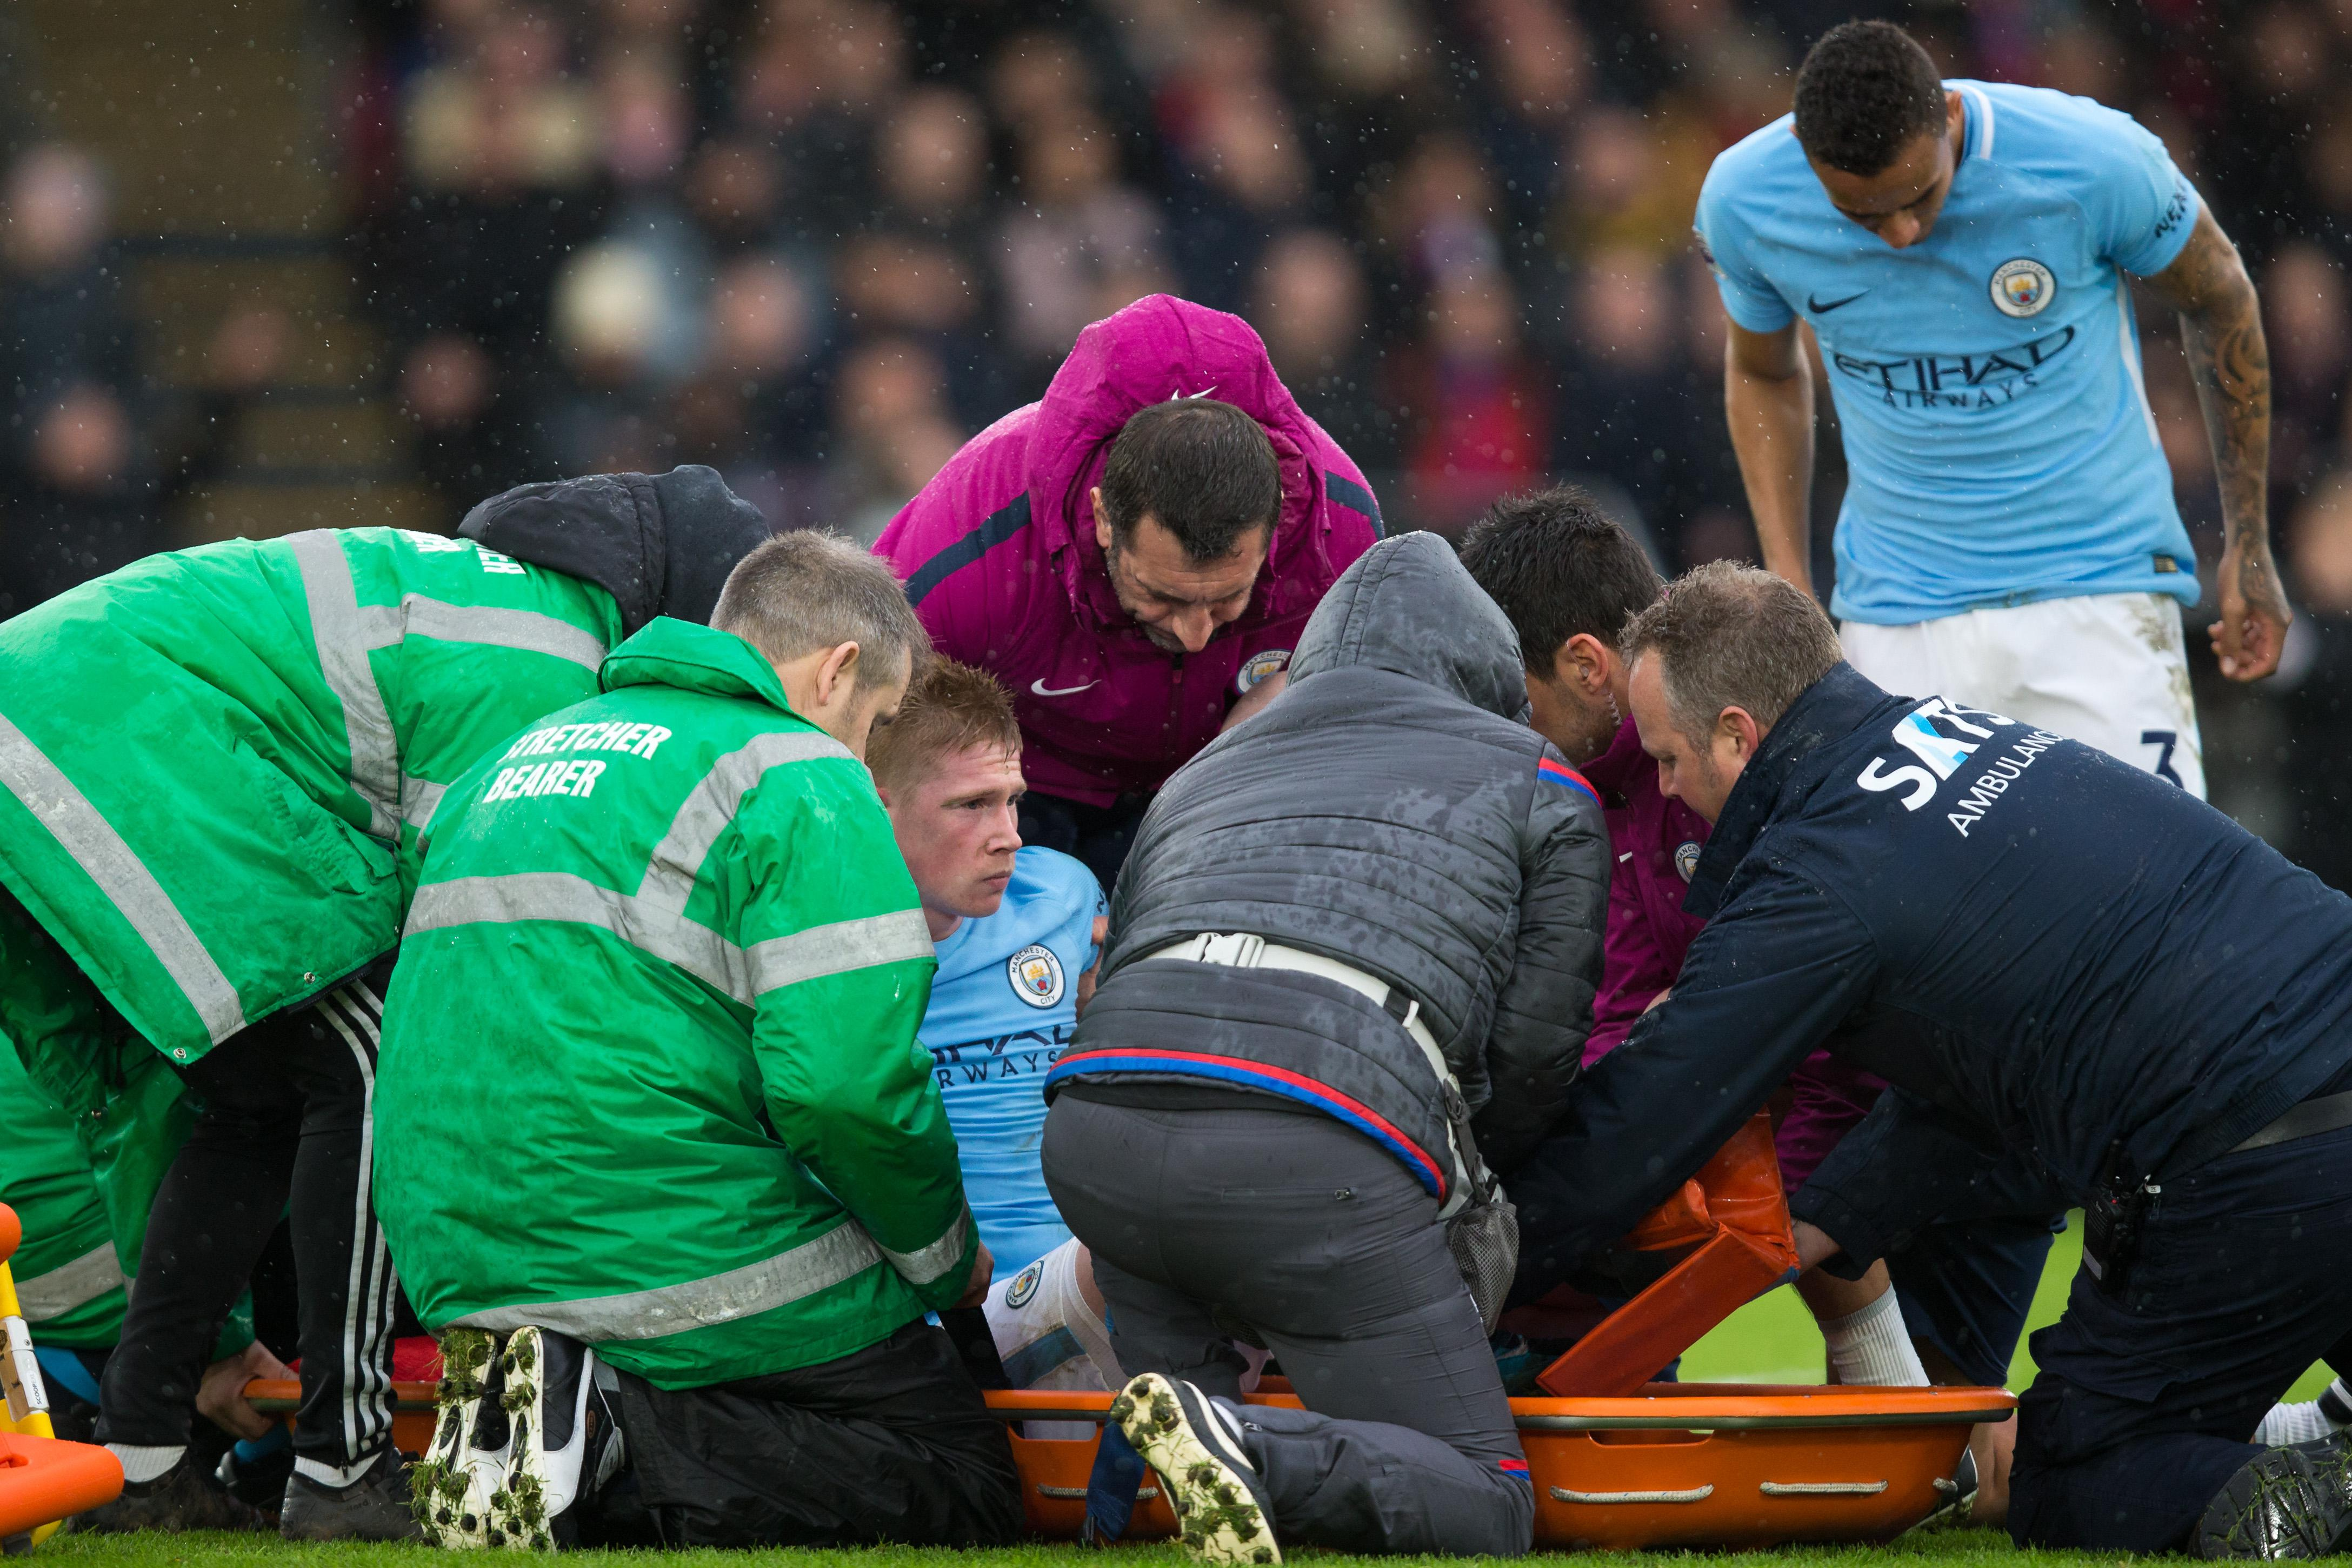 Medical staff put him onto a stretcher